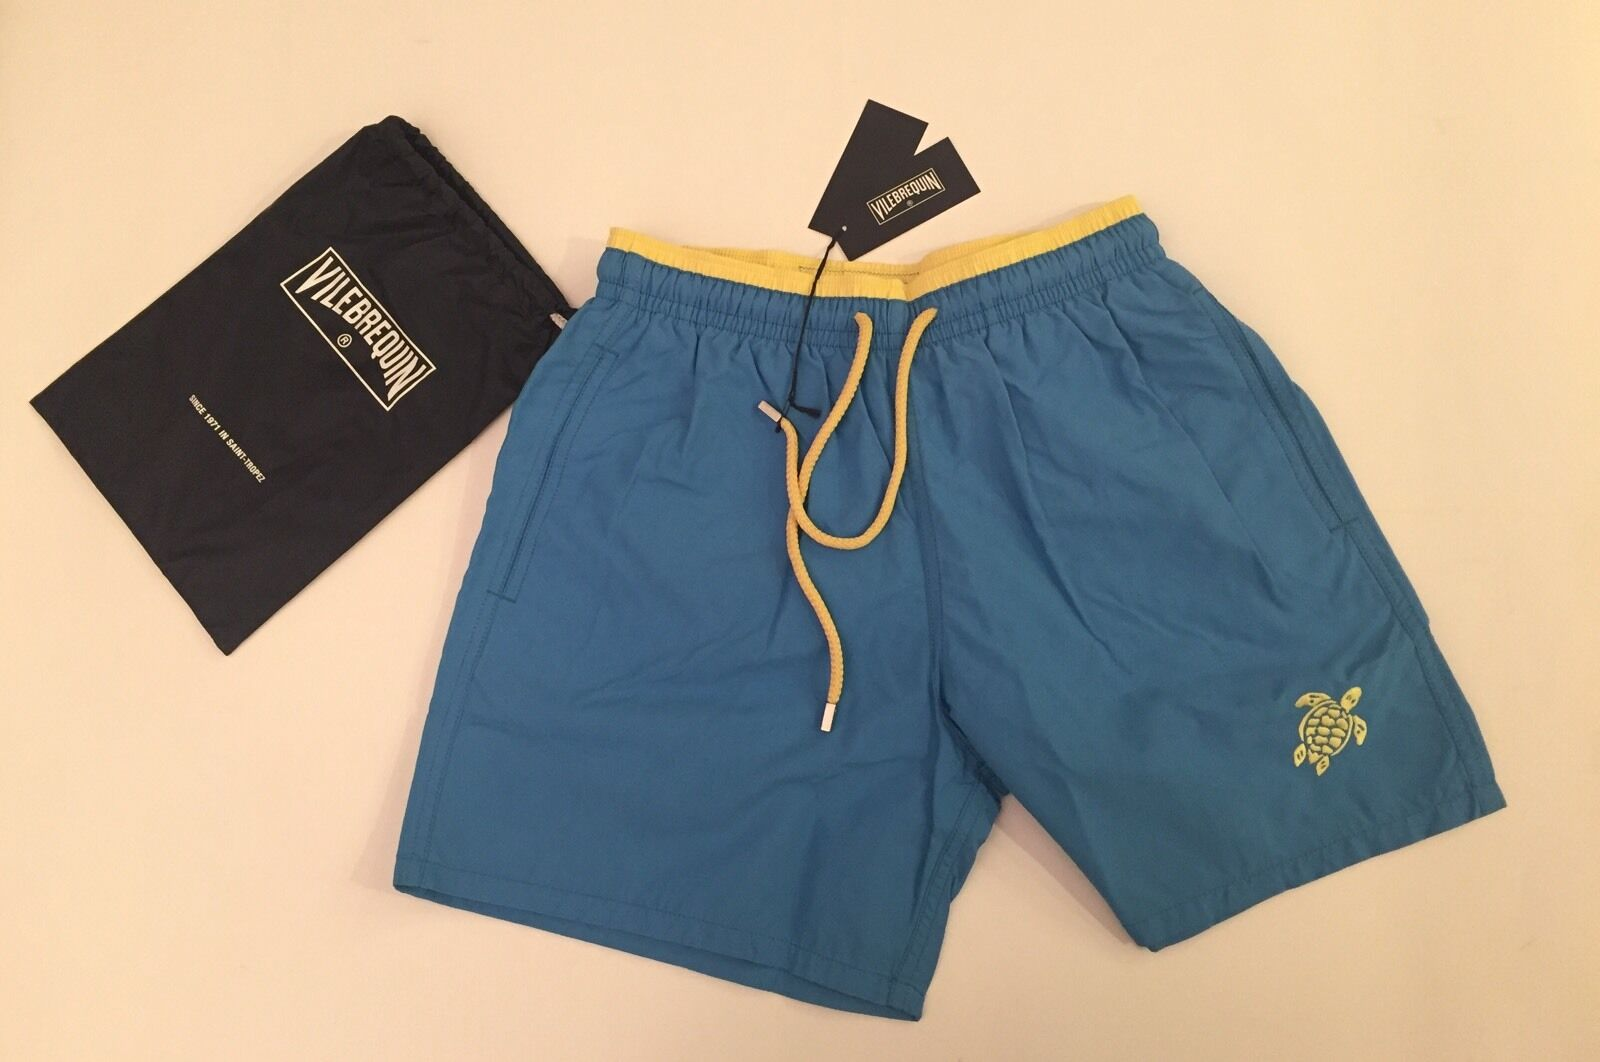 New w Tags & Bag Authentic Vilebrequin Moka Swim Trunks in bluee Men Size 3XL